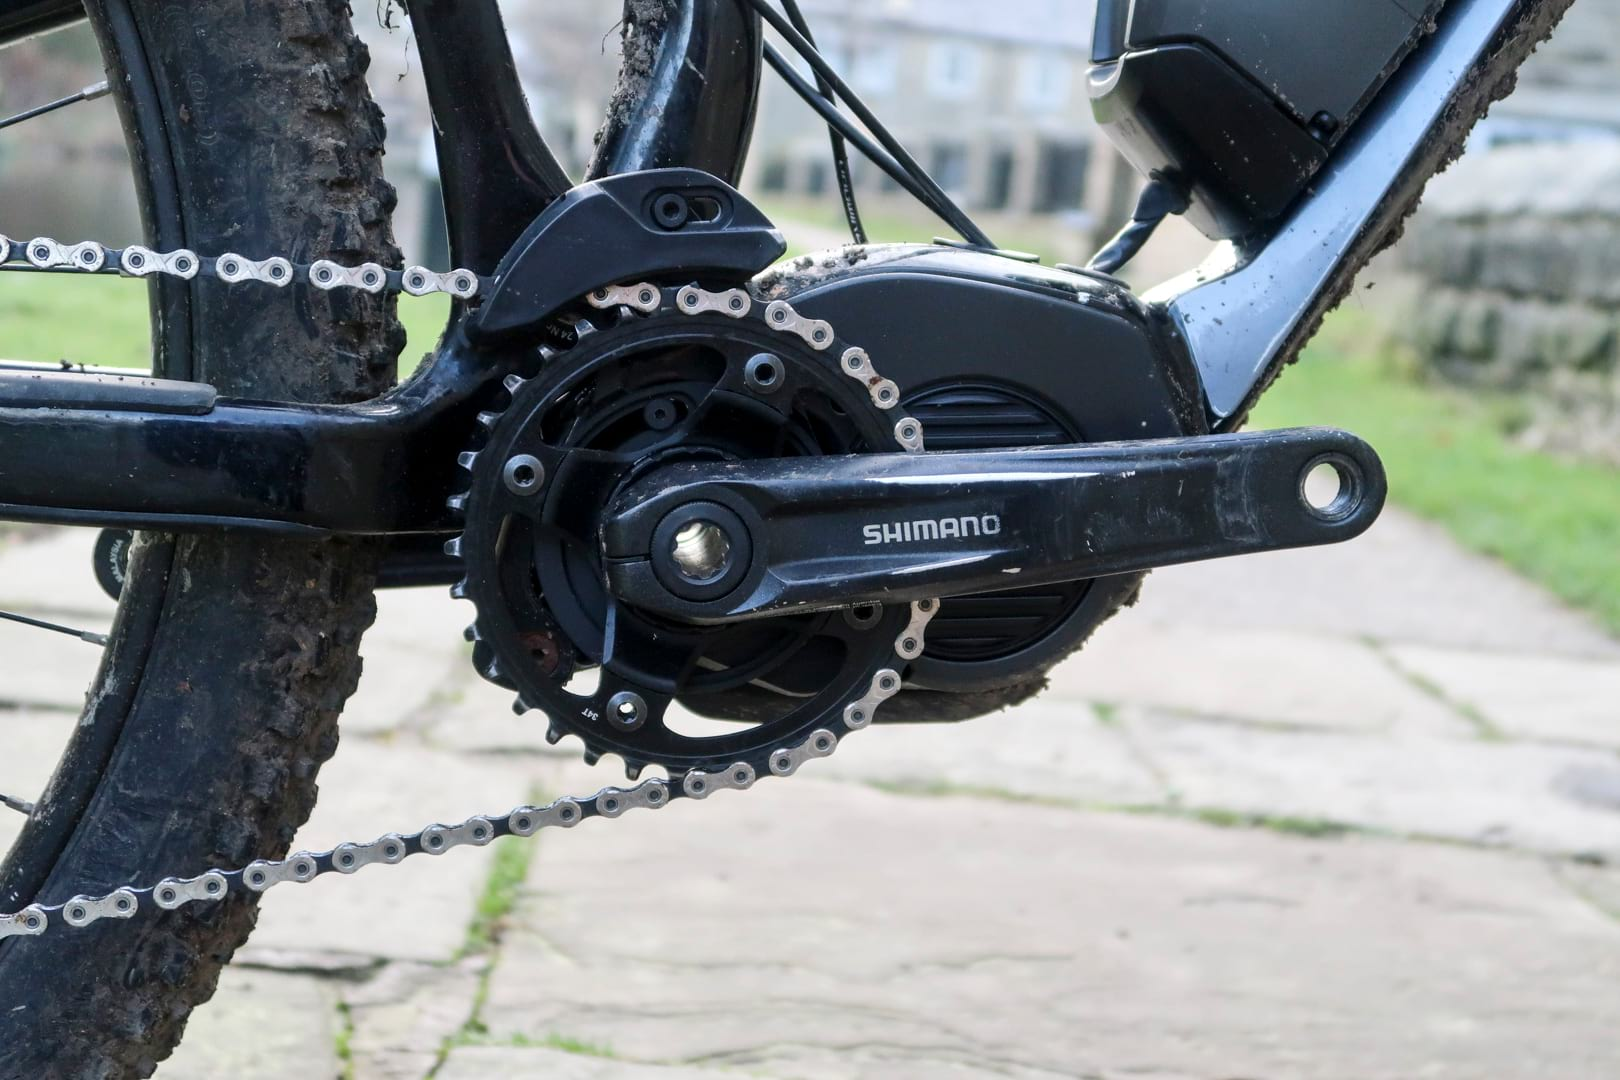 1d91eadf537 A Fun E-Day Out With Shimano Steps E8000, Turning Descents Into ...